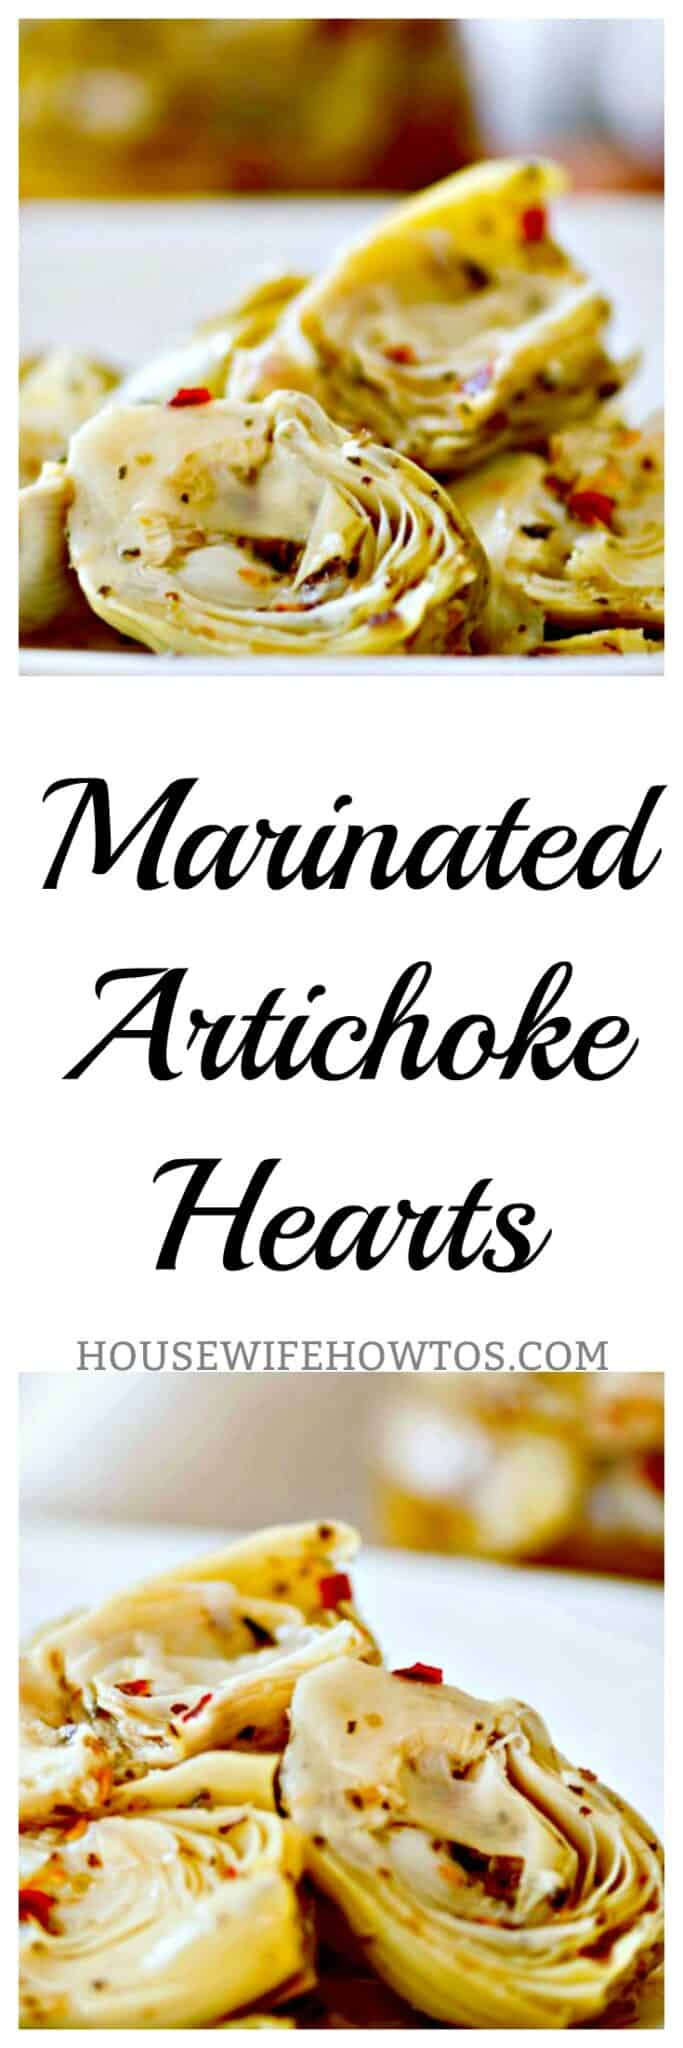 Homemade Marinated Artichoke Hearts Recipe - In 10 minutes you can make deliciously marinated artichokes at home that put the store-bought stuff to shame. They store for weeks in the refrigerator, too! #artichokehearts #artichokes #marinated #appetizer #condiment #pizzatopping #homemade